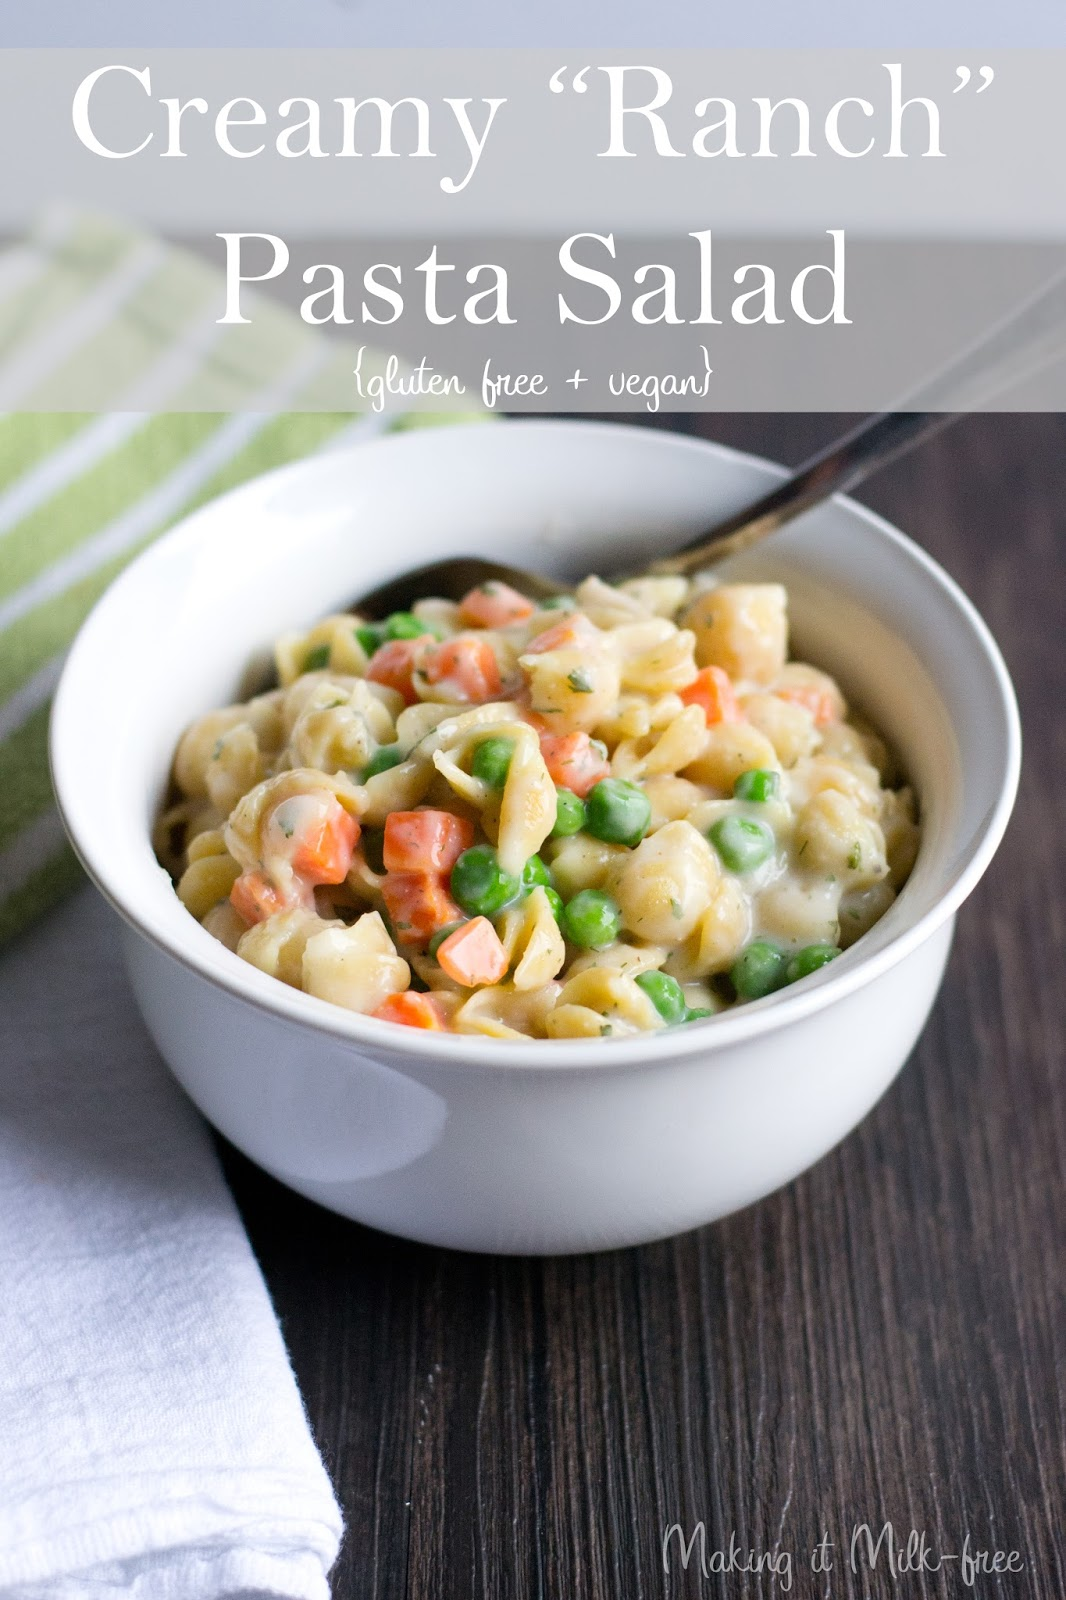 Creamy Ranch Pasta Salad {vegan + gluten free} from Making it Milk-free